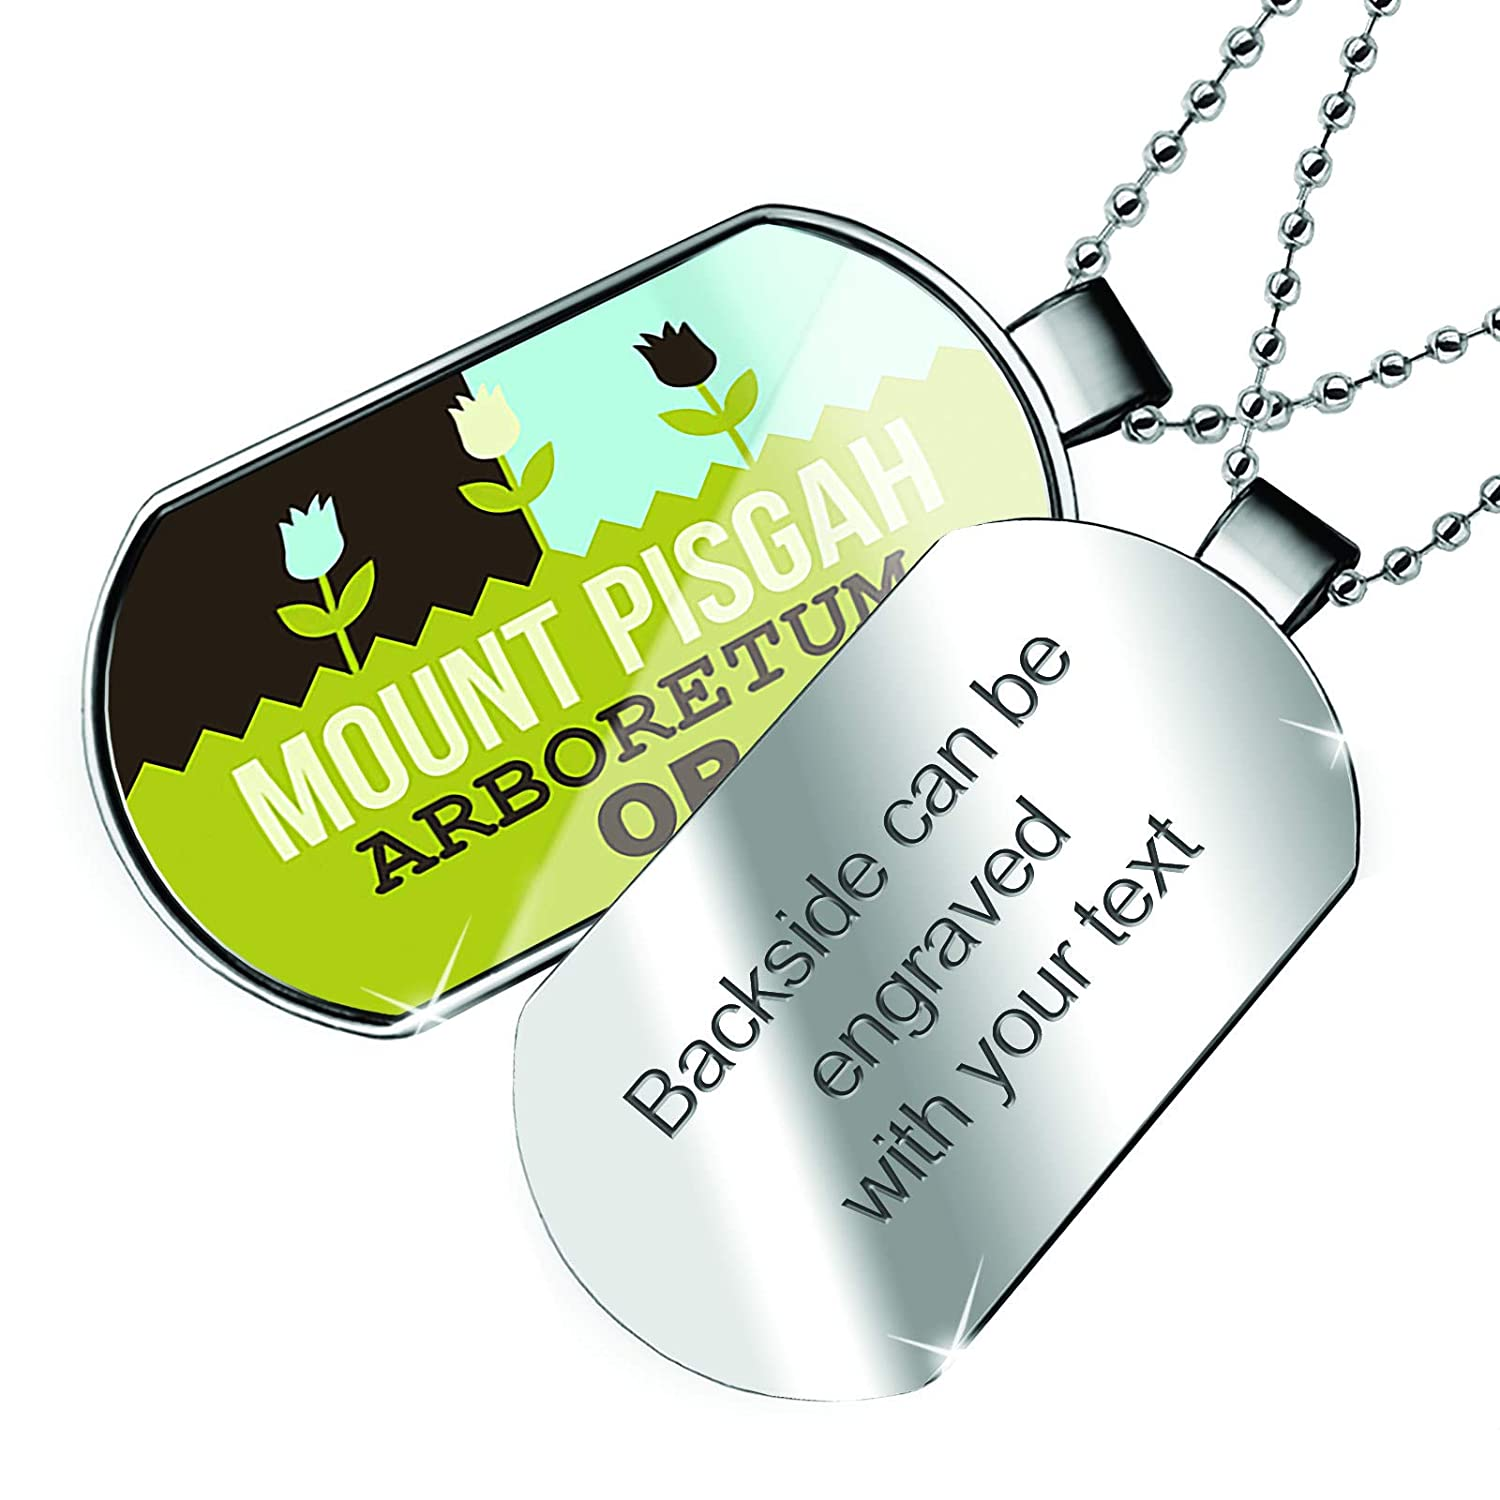 OR Dogtag Necklace NEONBLOND Personalized Name Engraved US Gardens Mount Pisgah Arboretum